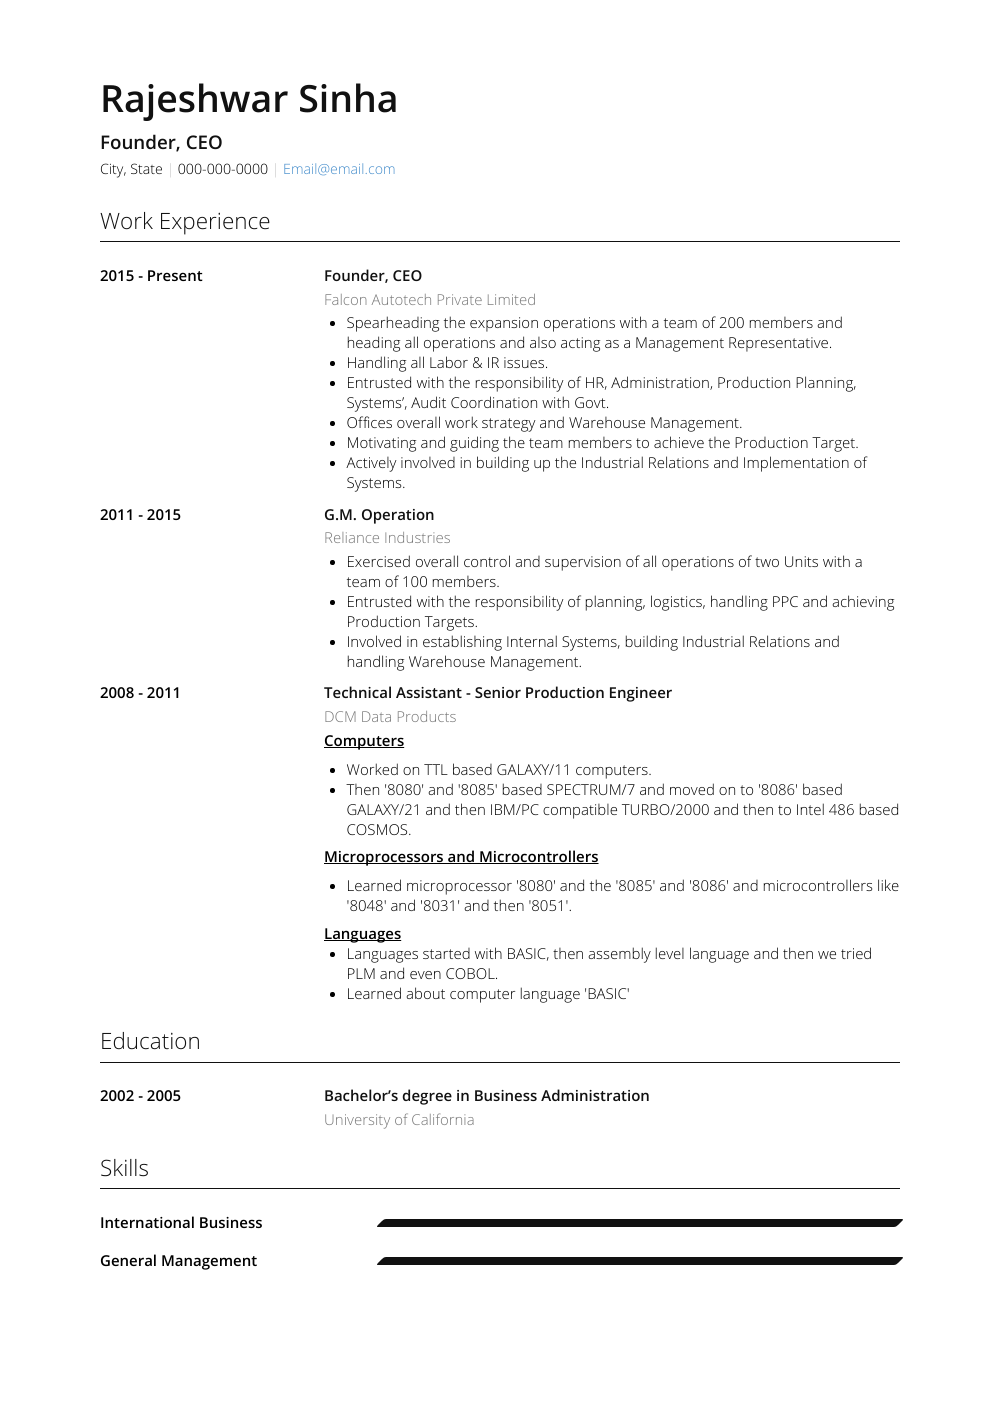 Ceo - Resume Samples & Templates | VisualCV